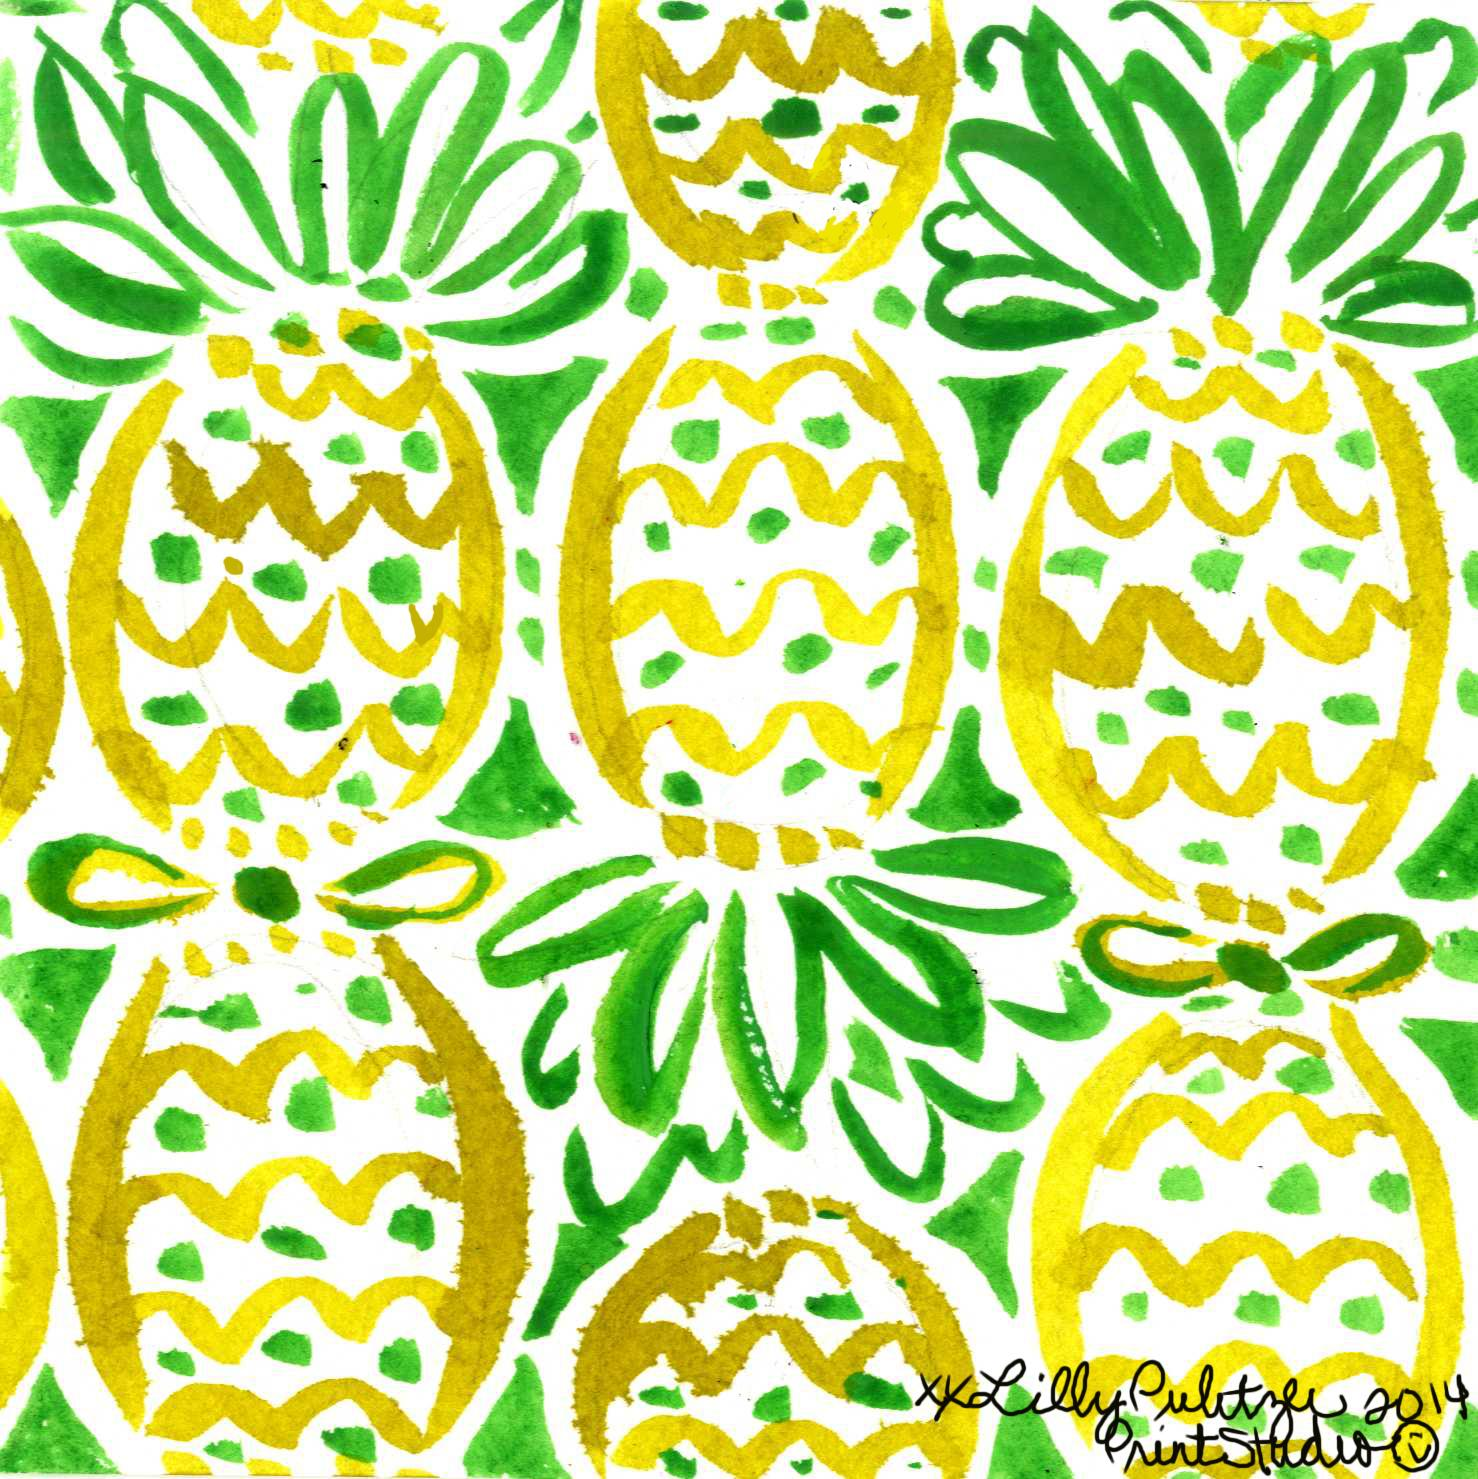 Lilly Pulitzer Wallpaper Fall Lilly Pulitzer On Twitter Quot Resort To The Core Lilly5x5